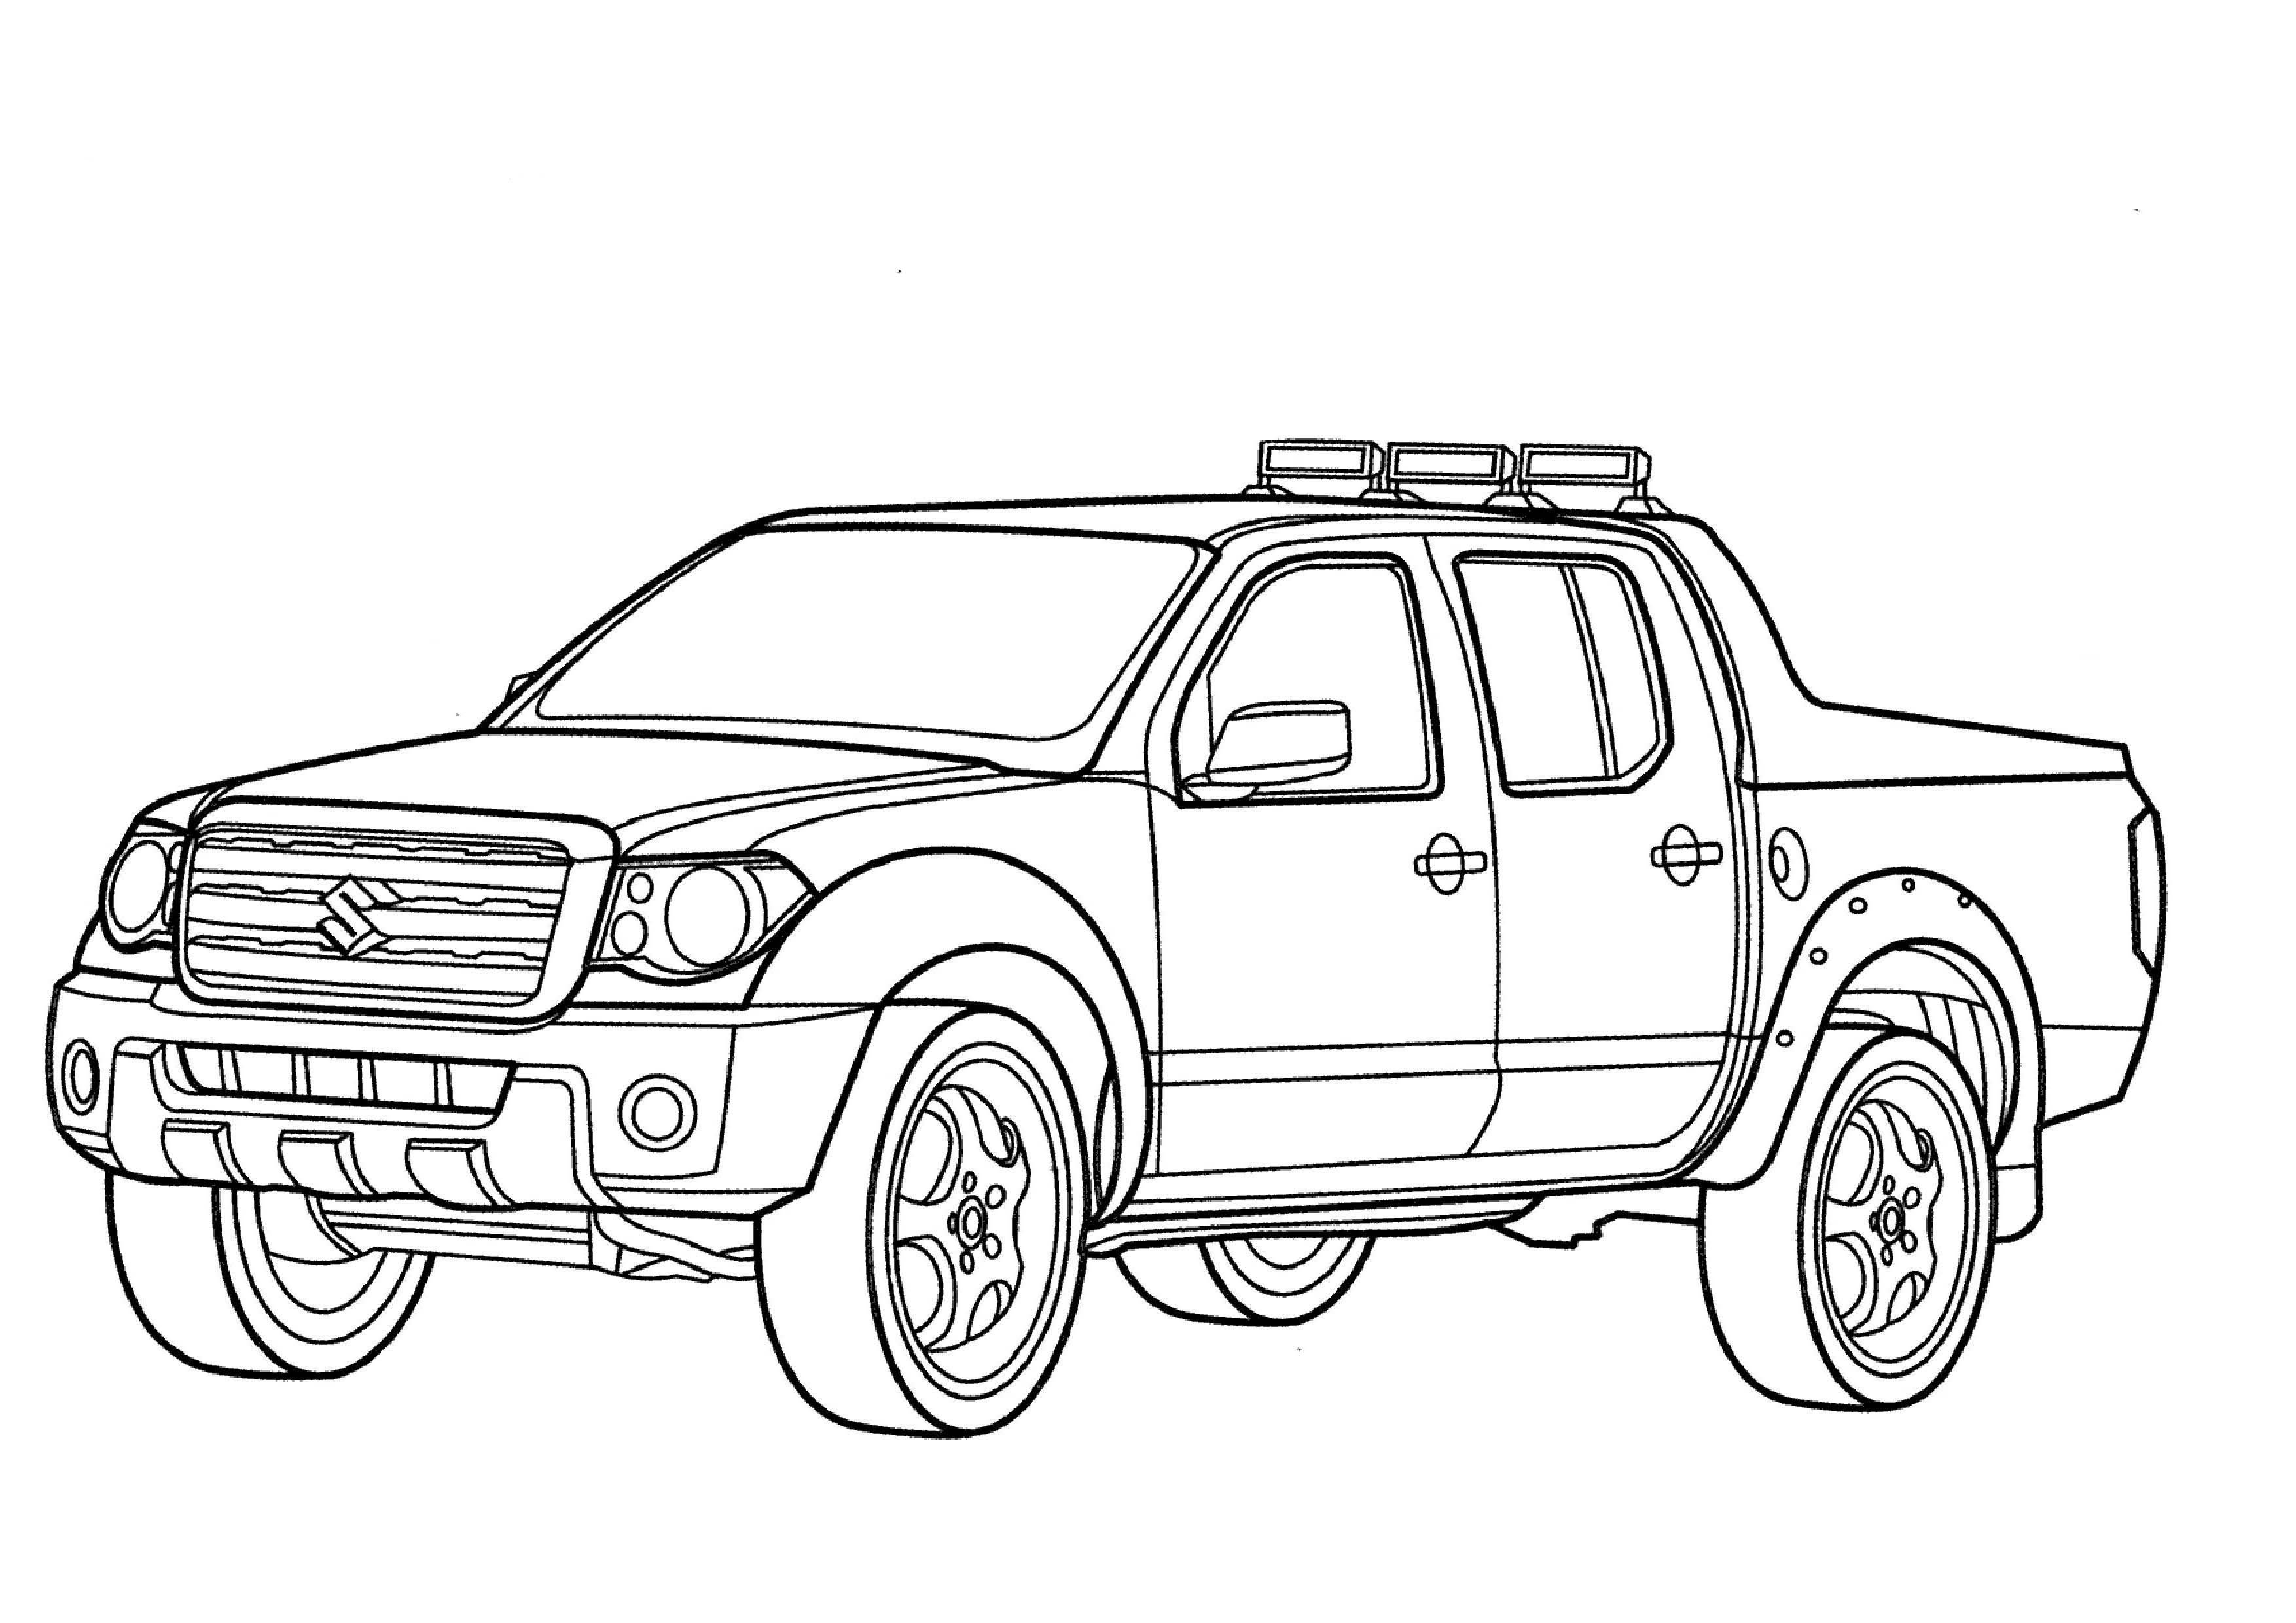 Best Equator Cars Truck Coloring Pages Cars Coloring Pages Classic Ford Trucks